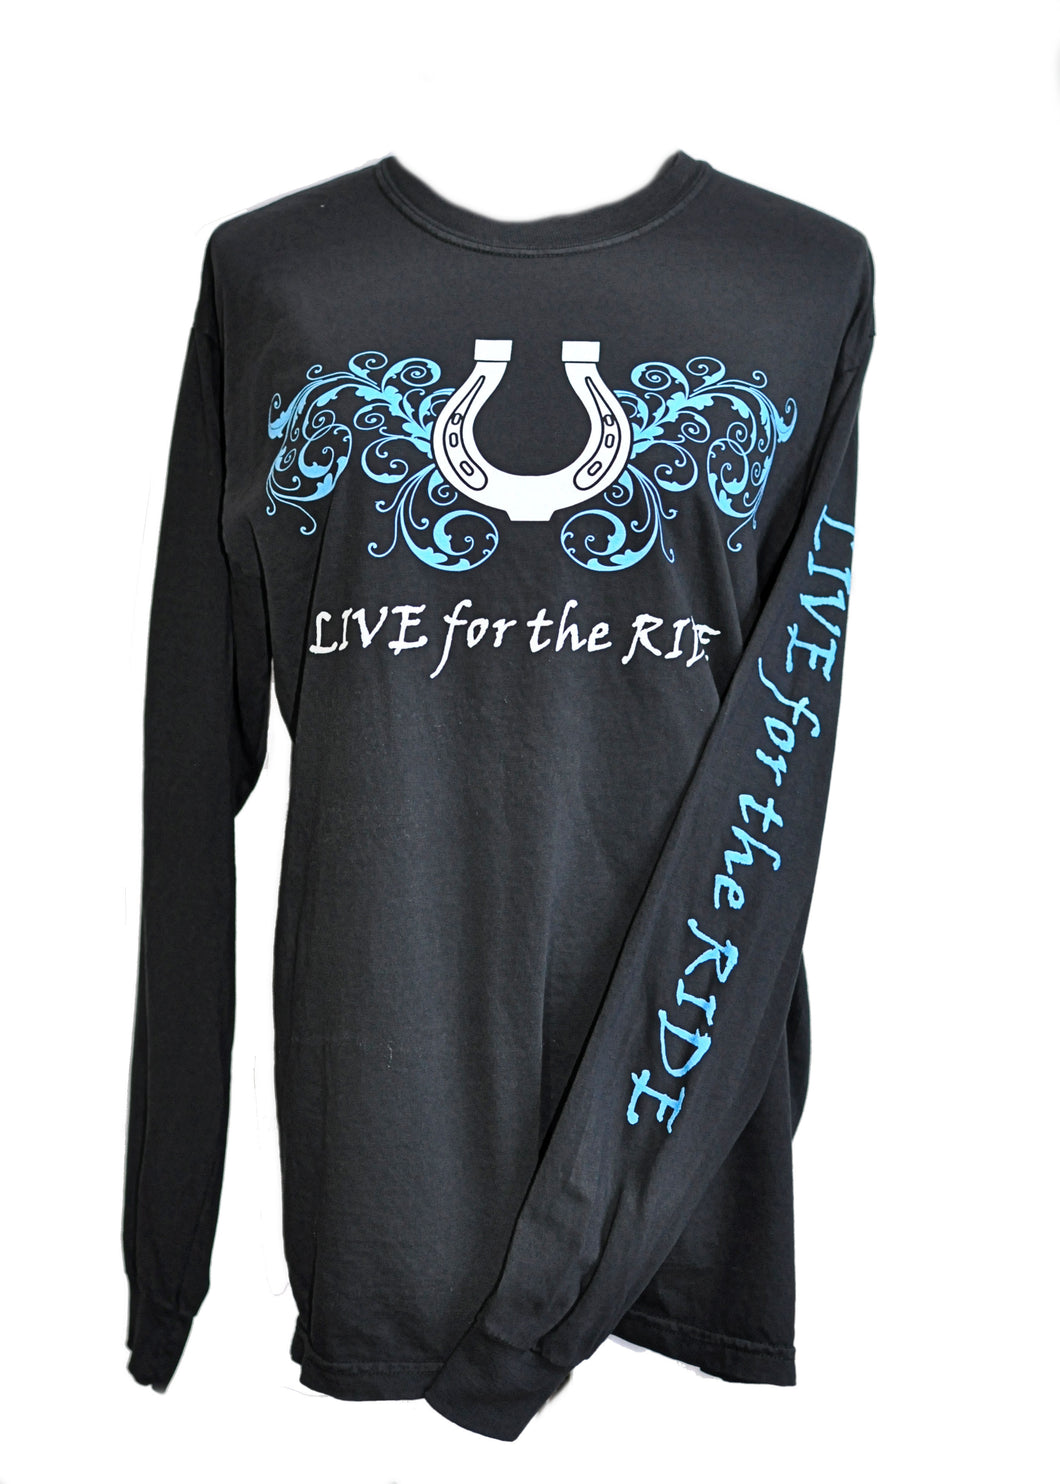 Highlighter Horseshoe LONG Sleeve T-shirt - Live for the Ride